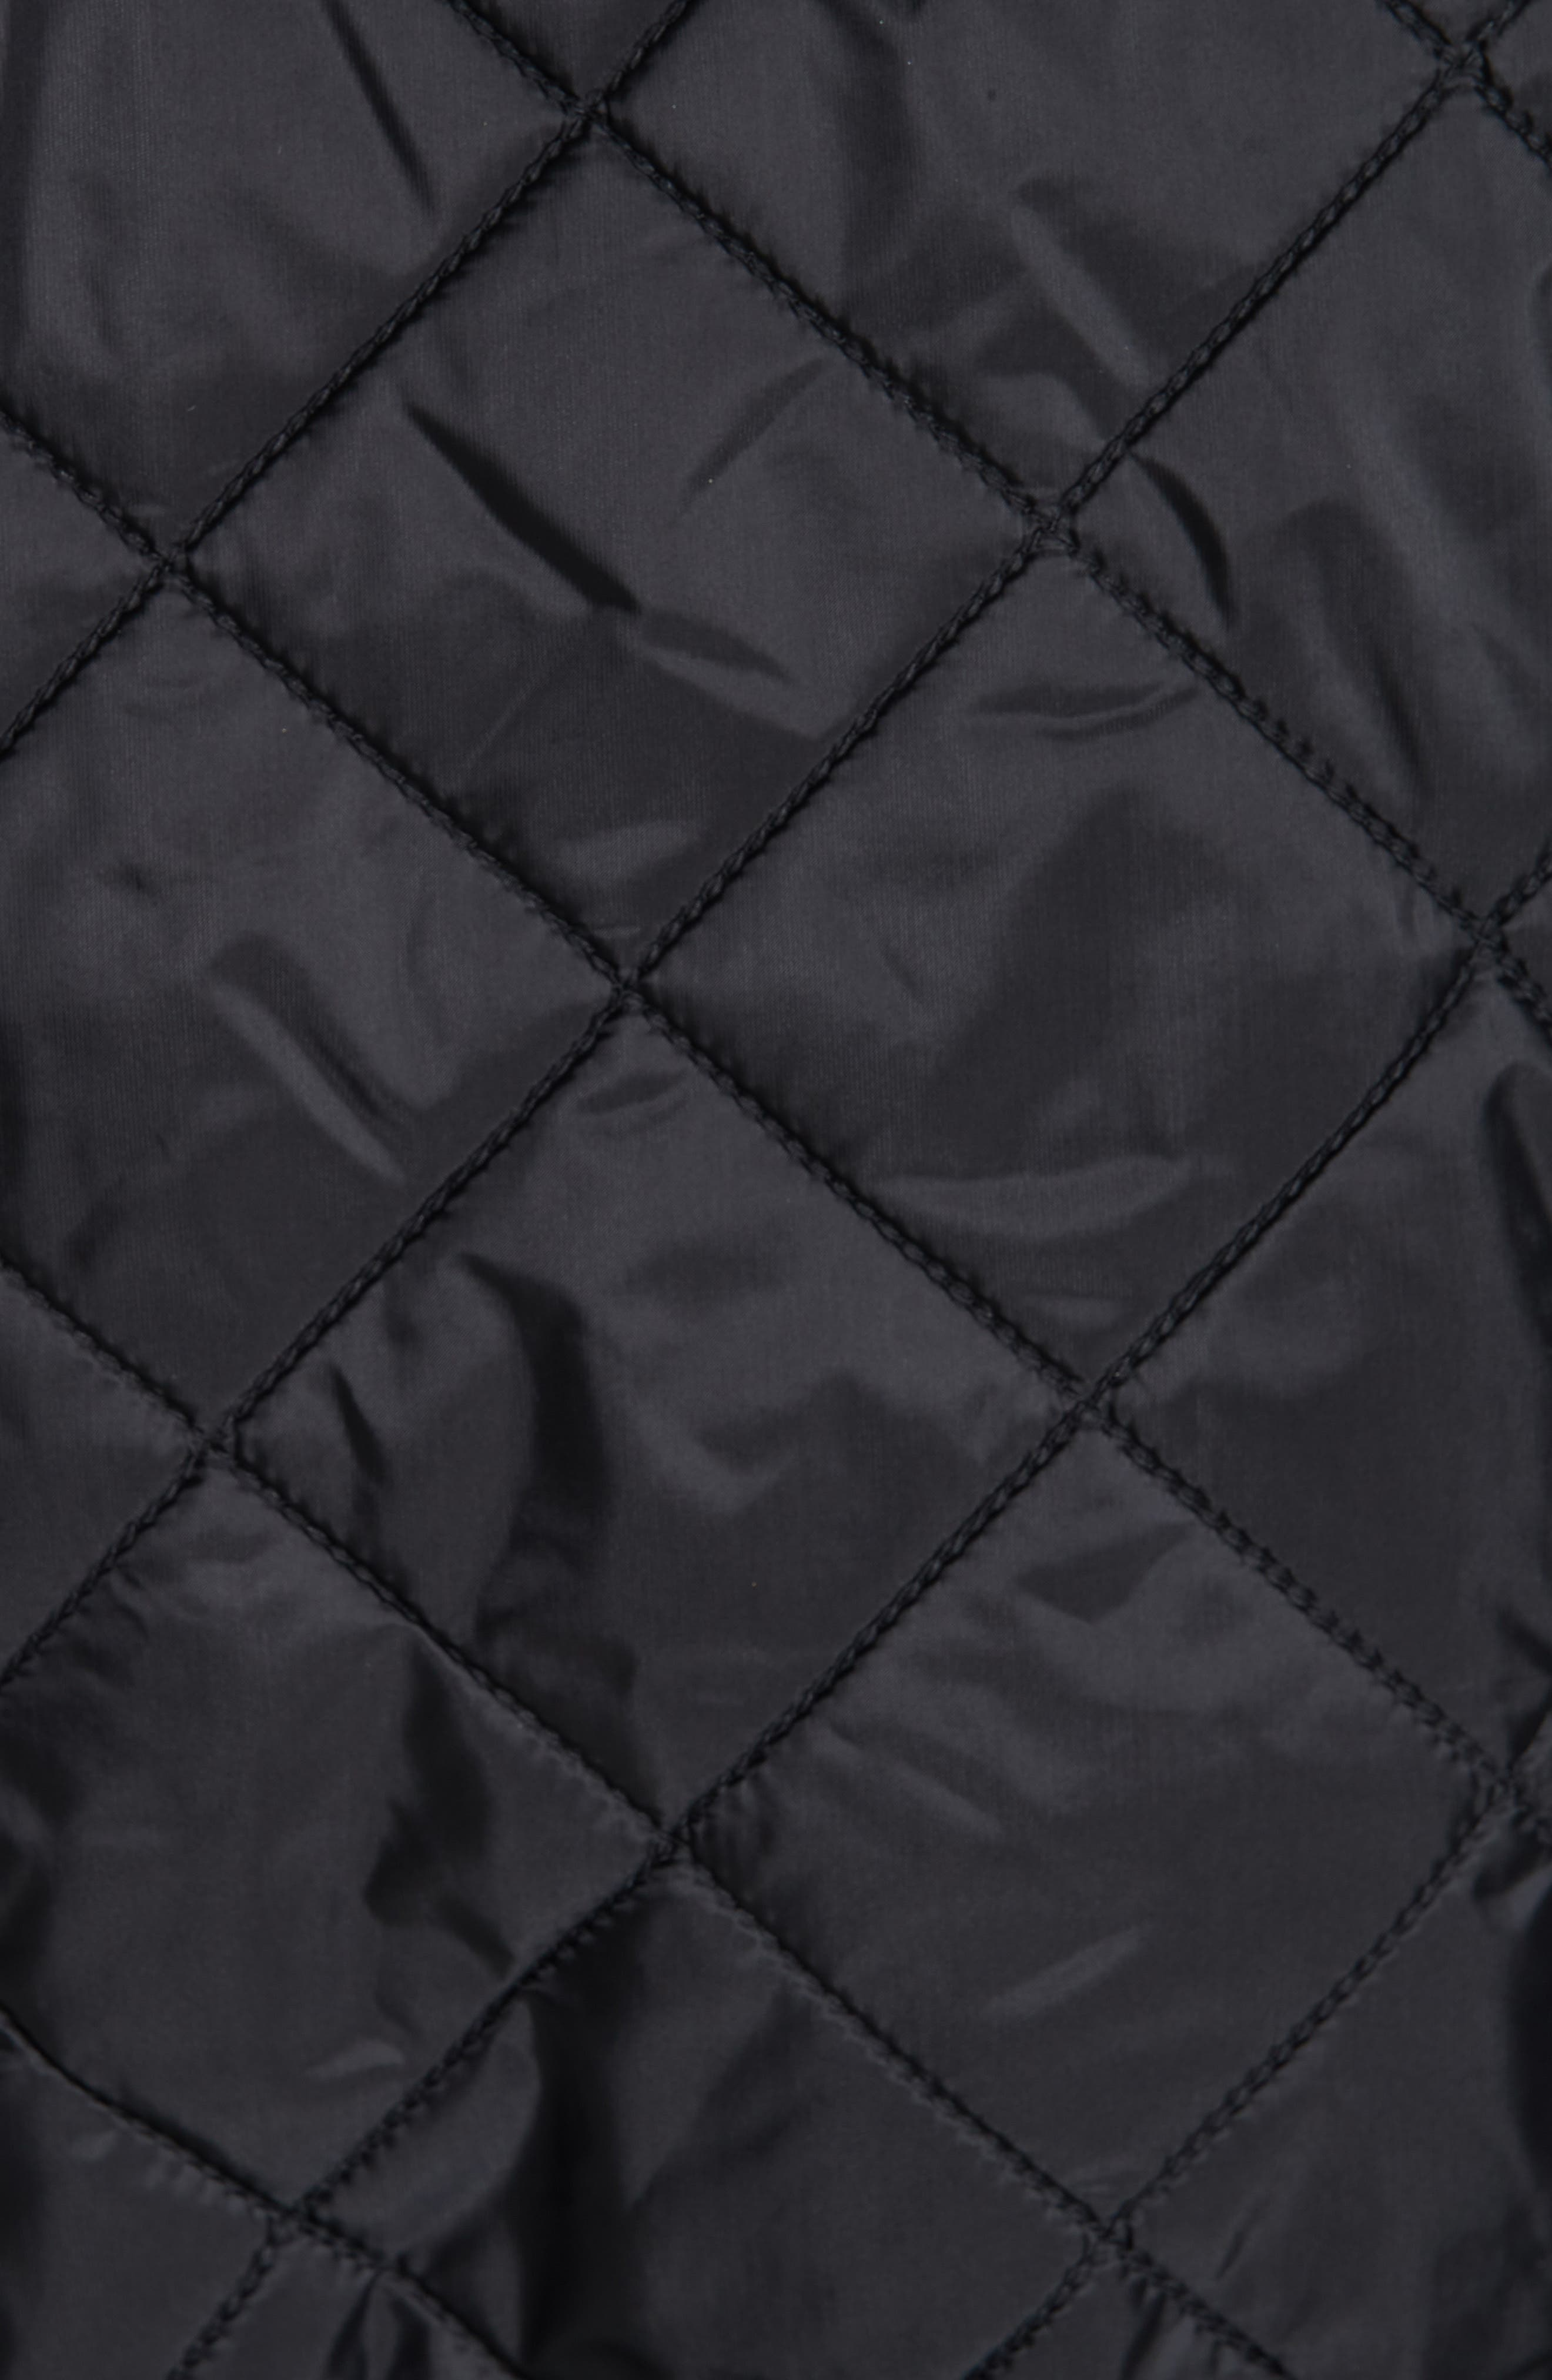 Horberie Quilted Trench Coat,                             Alternate thumbnail 6, color,                             BLACK